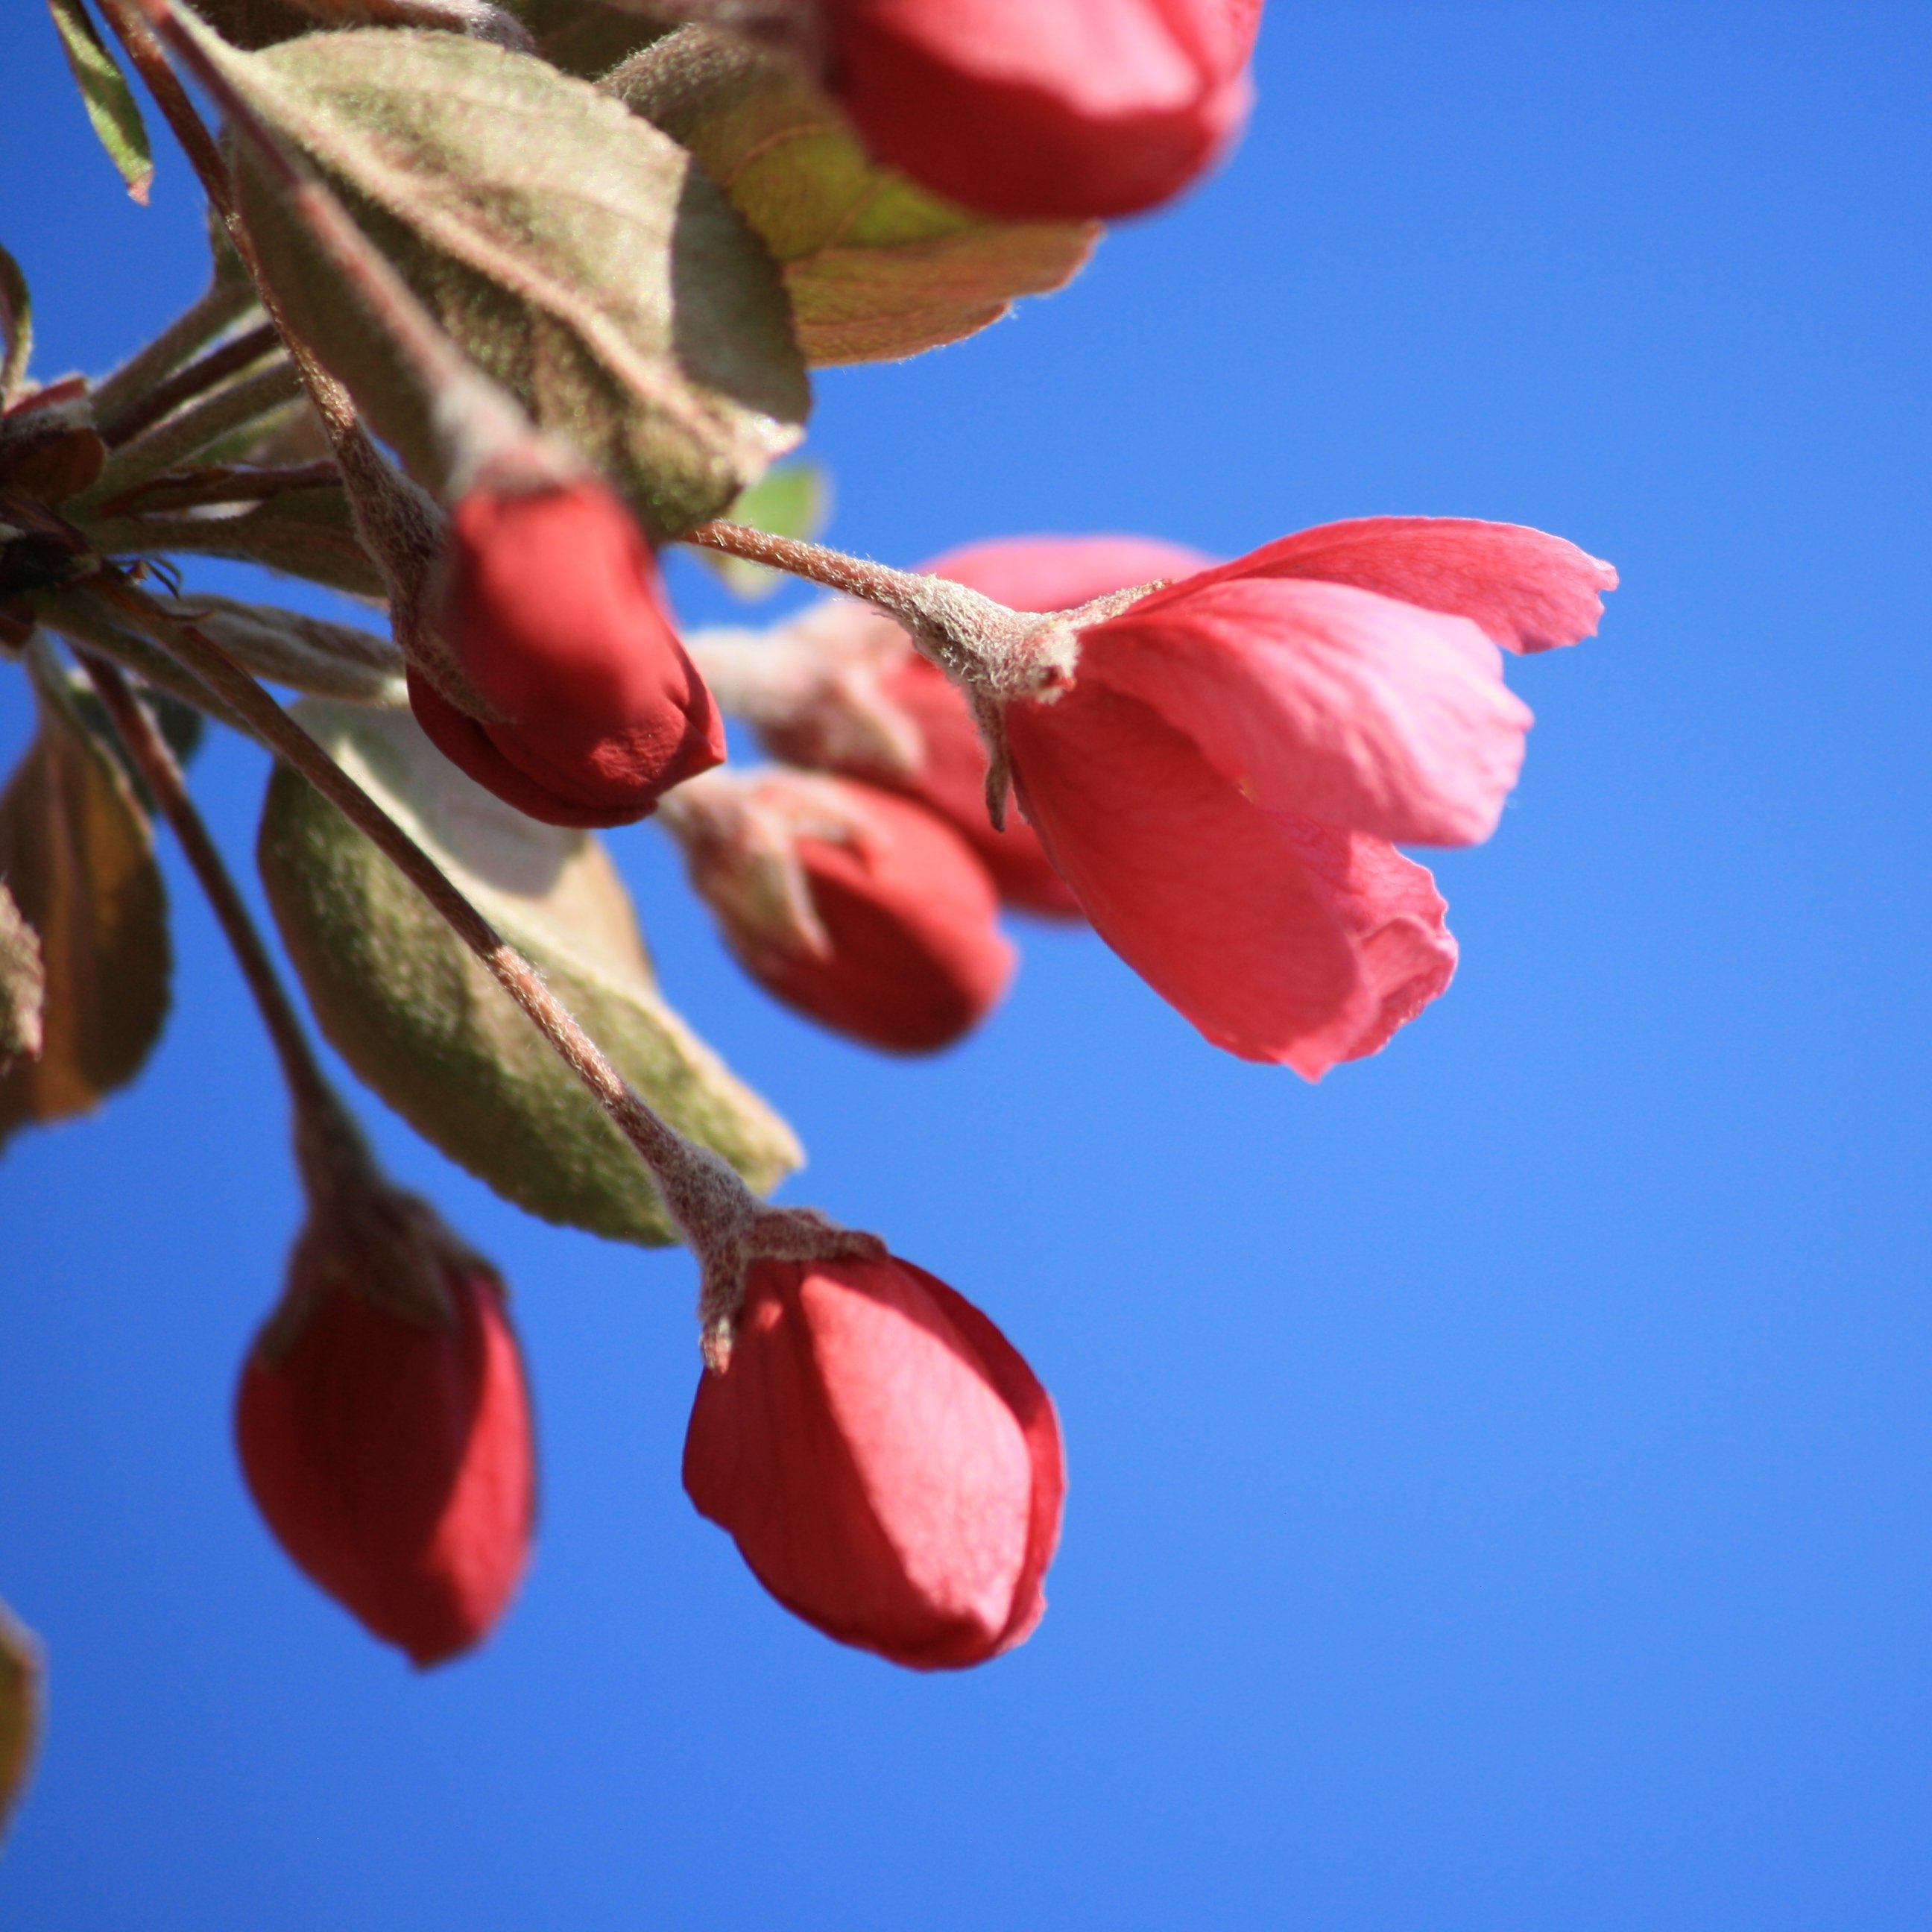 Red Flower Bud Starting To Blossom Picture Free